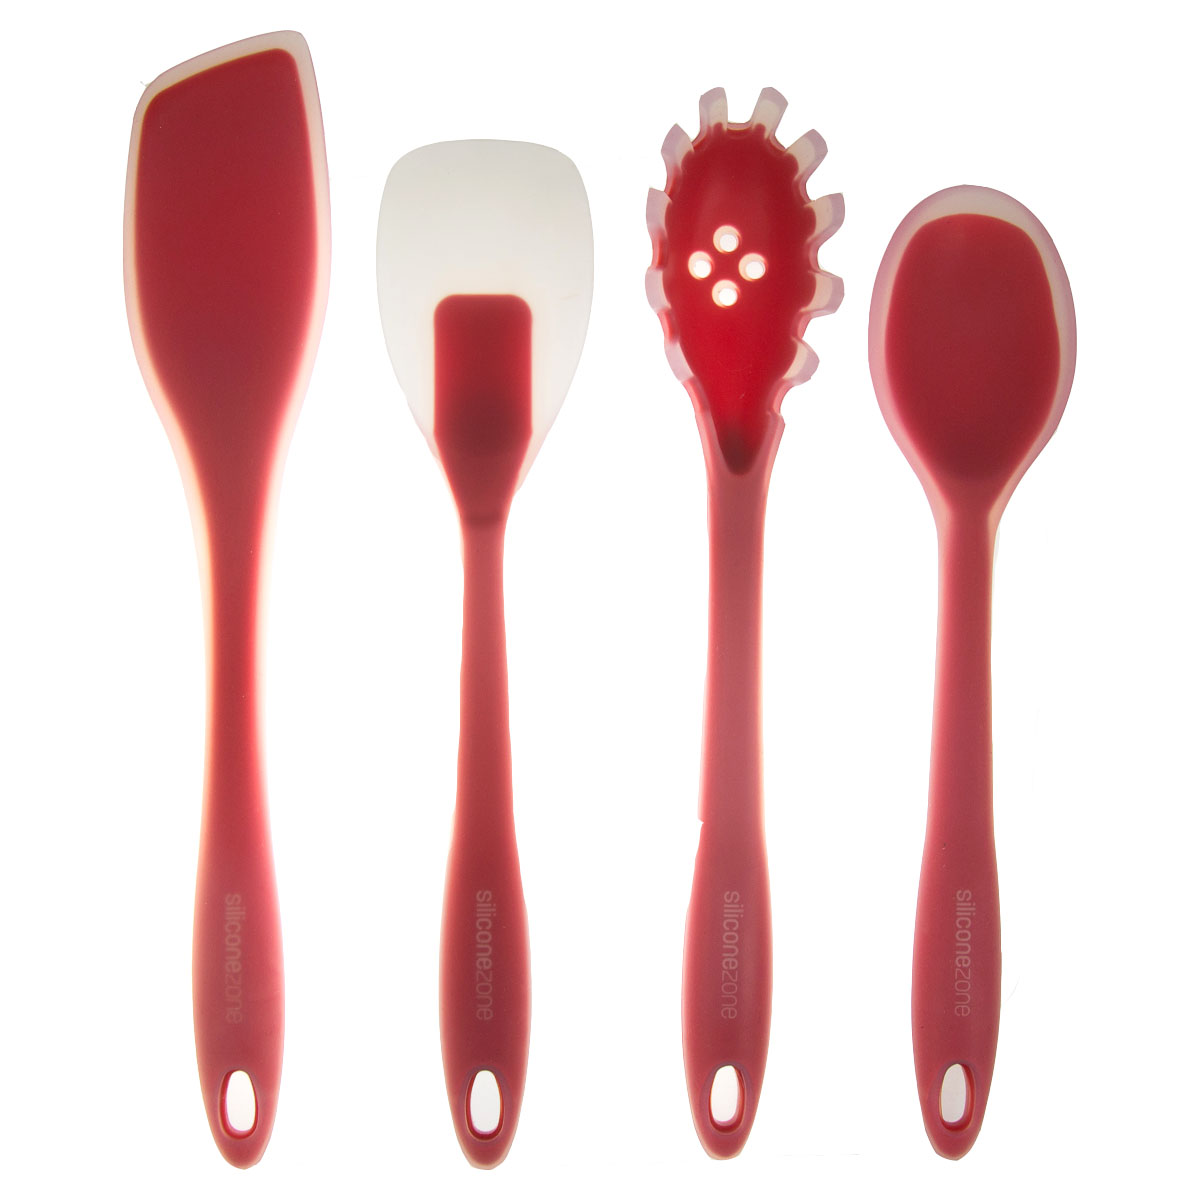 4-Piece All-Purpose Silicone Kitchen Cooking Utensils Set Heat Resistant Spoonula Turner Spaghetti Ladle Red Bundle